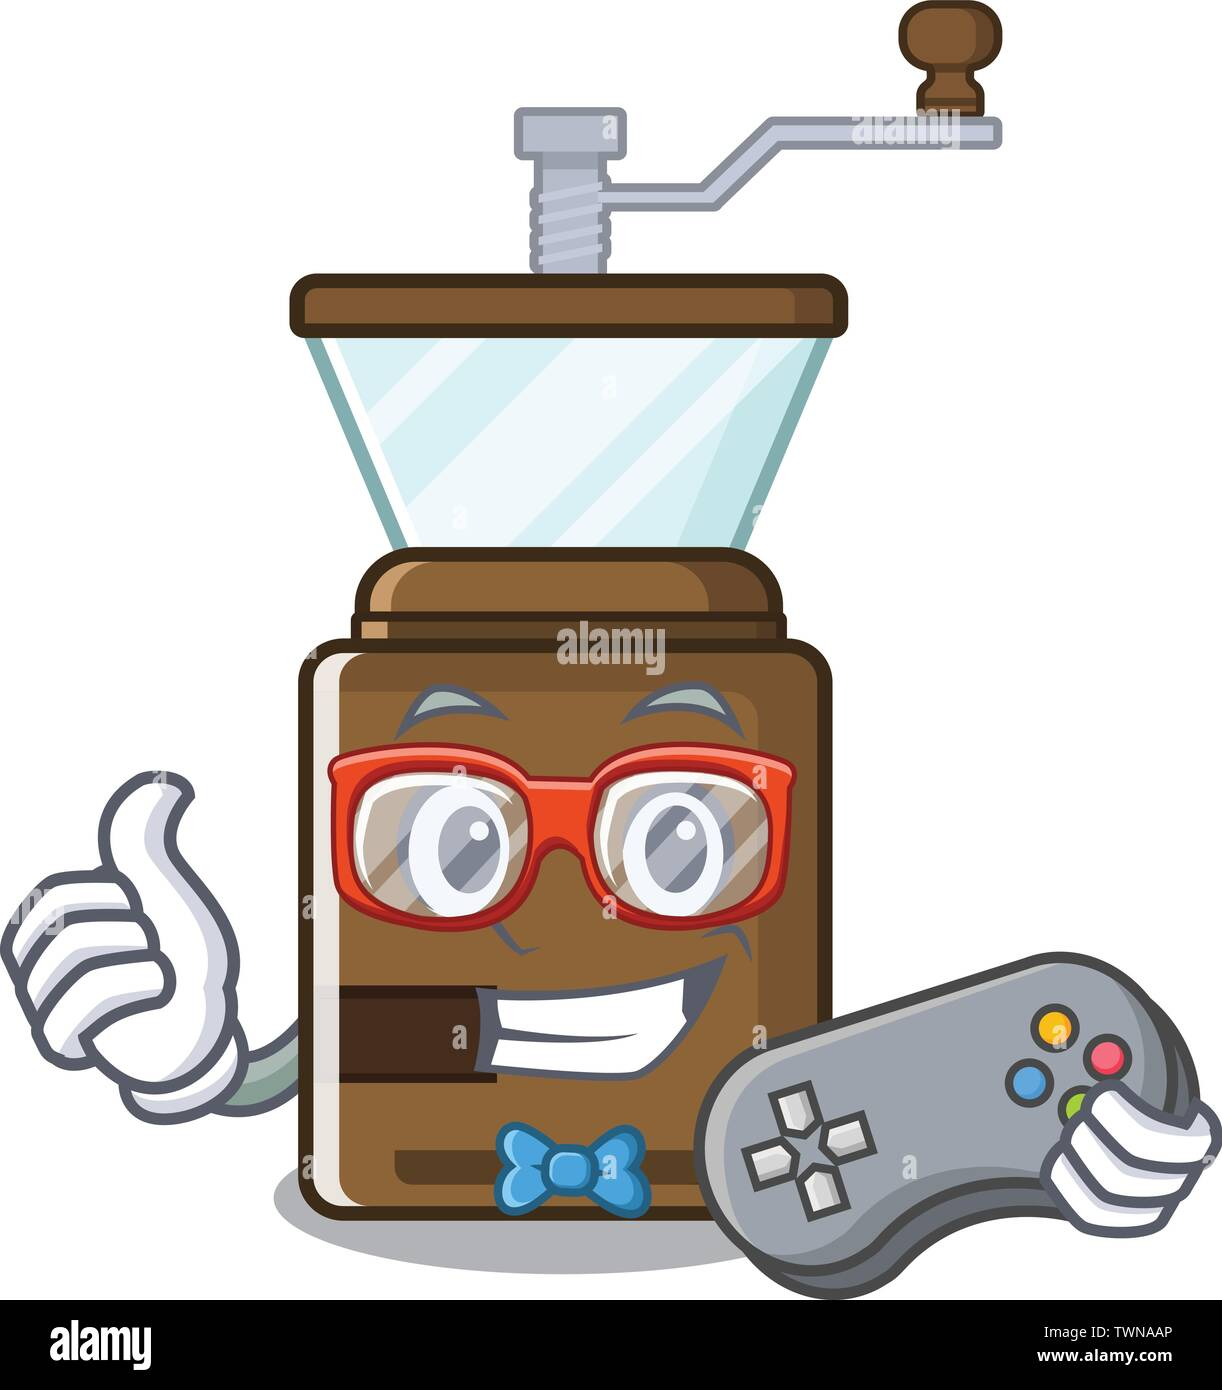 Gamer cartoon coffee grinder above wooden table - Stock Image